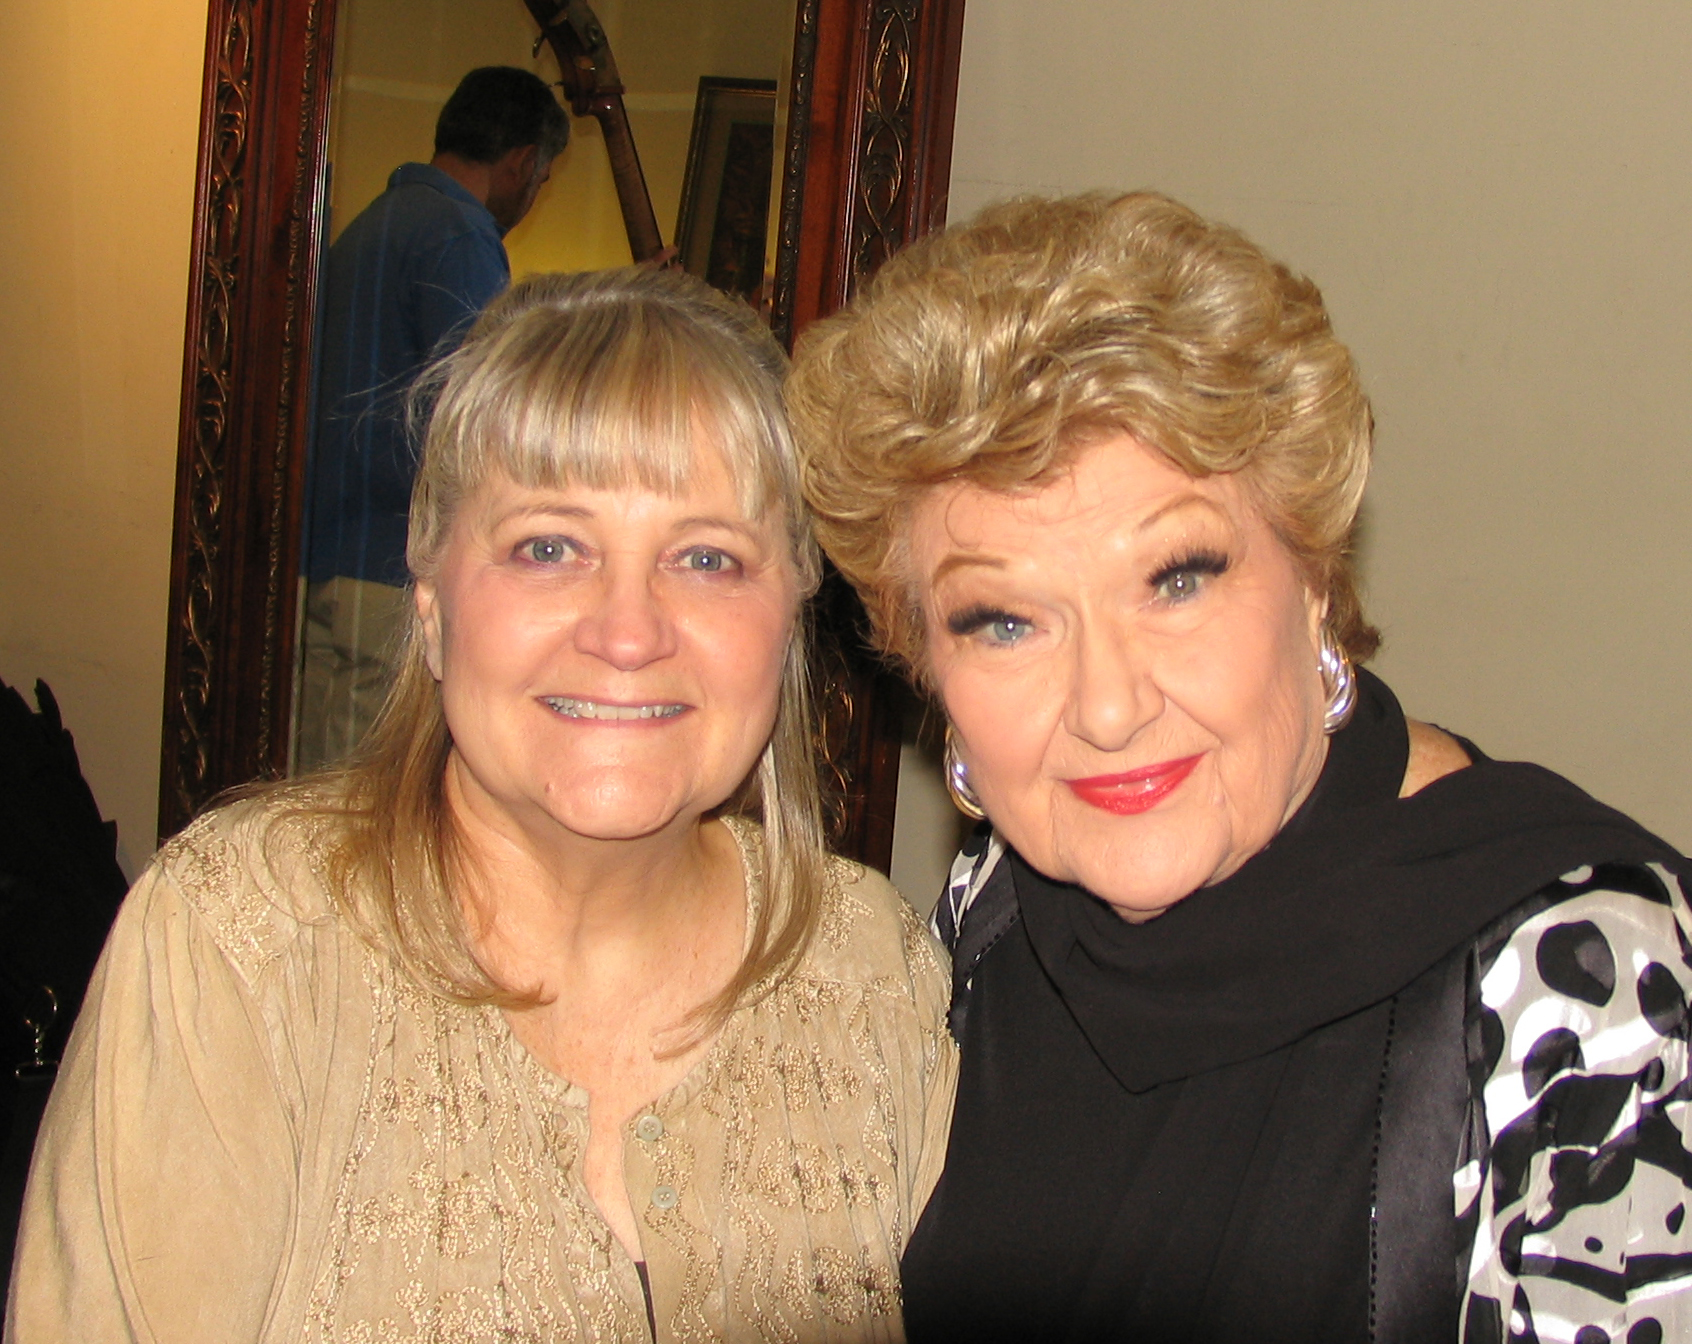 Debbi and Marilyn at the rehearsal studio before the show